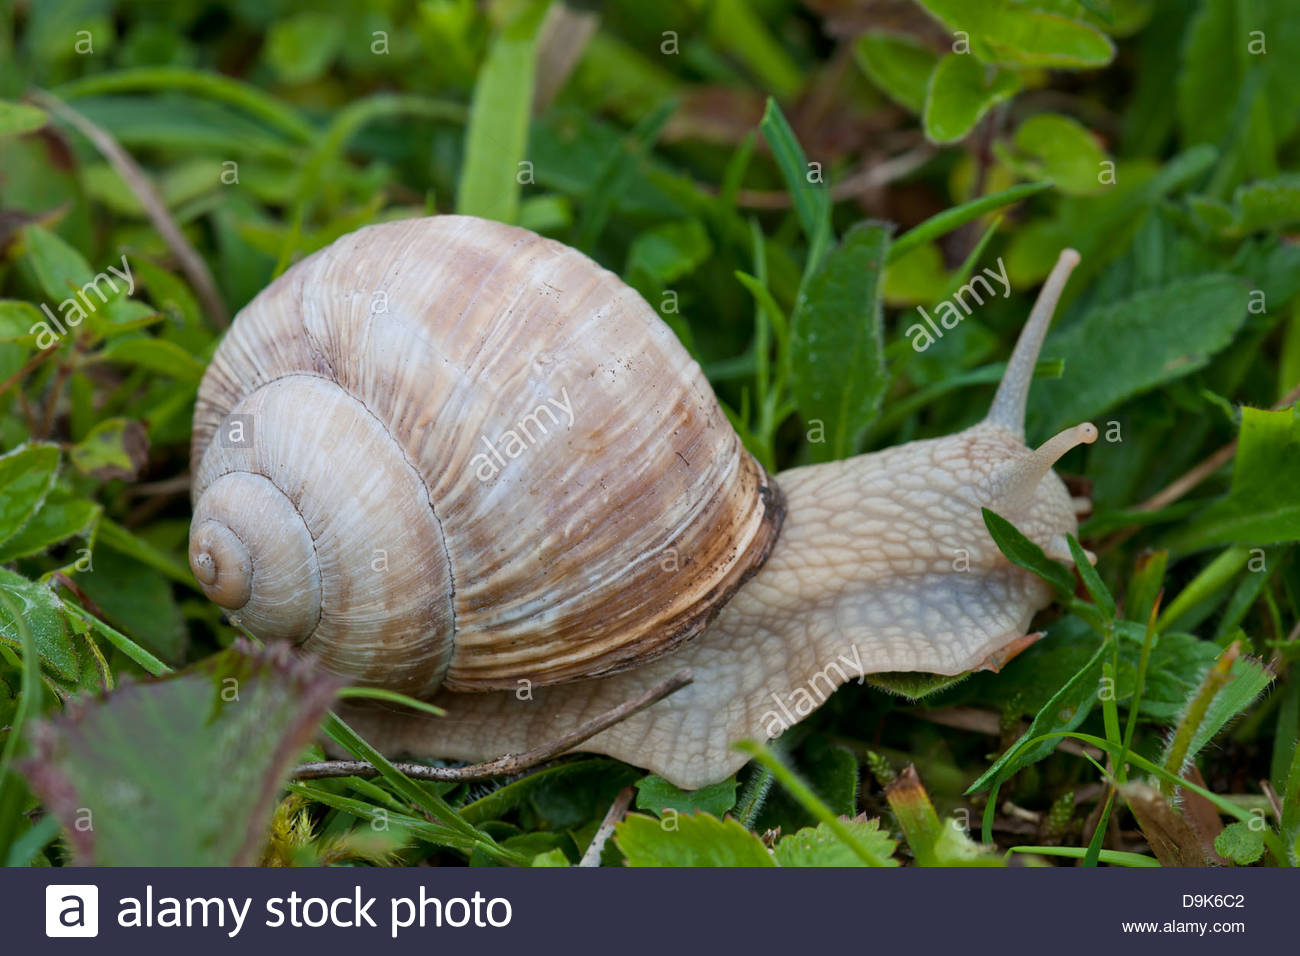 Roman Snail Helix pomatia wild native June meadow field edible Sheepleas Surrey England white chalk grassland - Stock Image